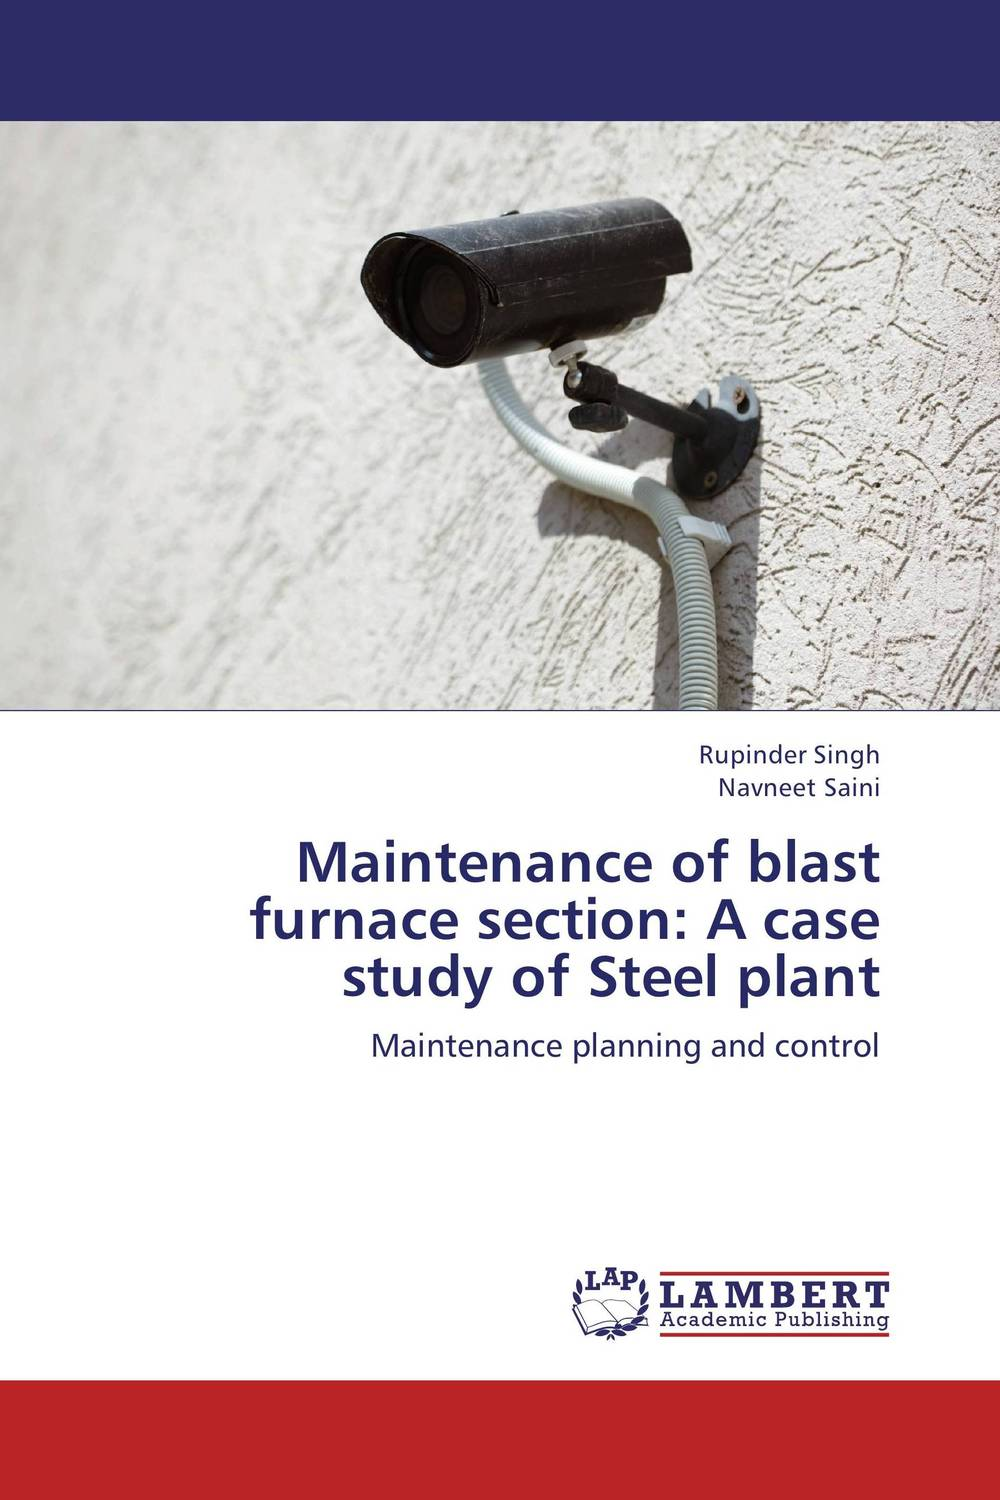 Maintenance of blast furnace section: A case study of Steel plant a case study of how dupont reduced its environment footprint